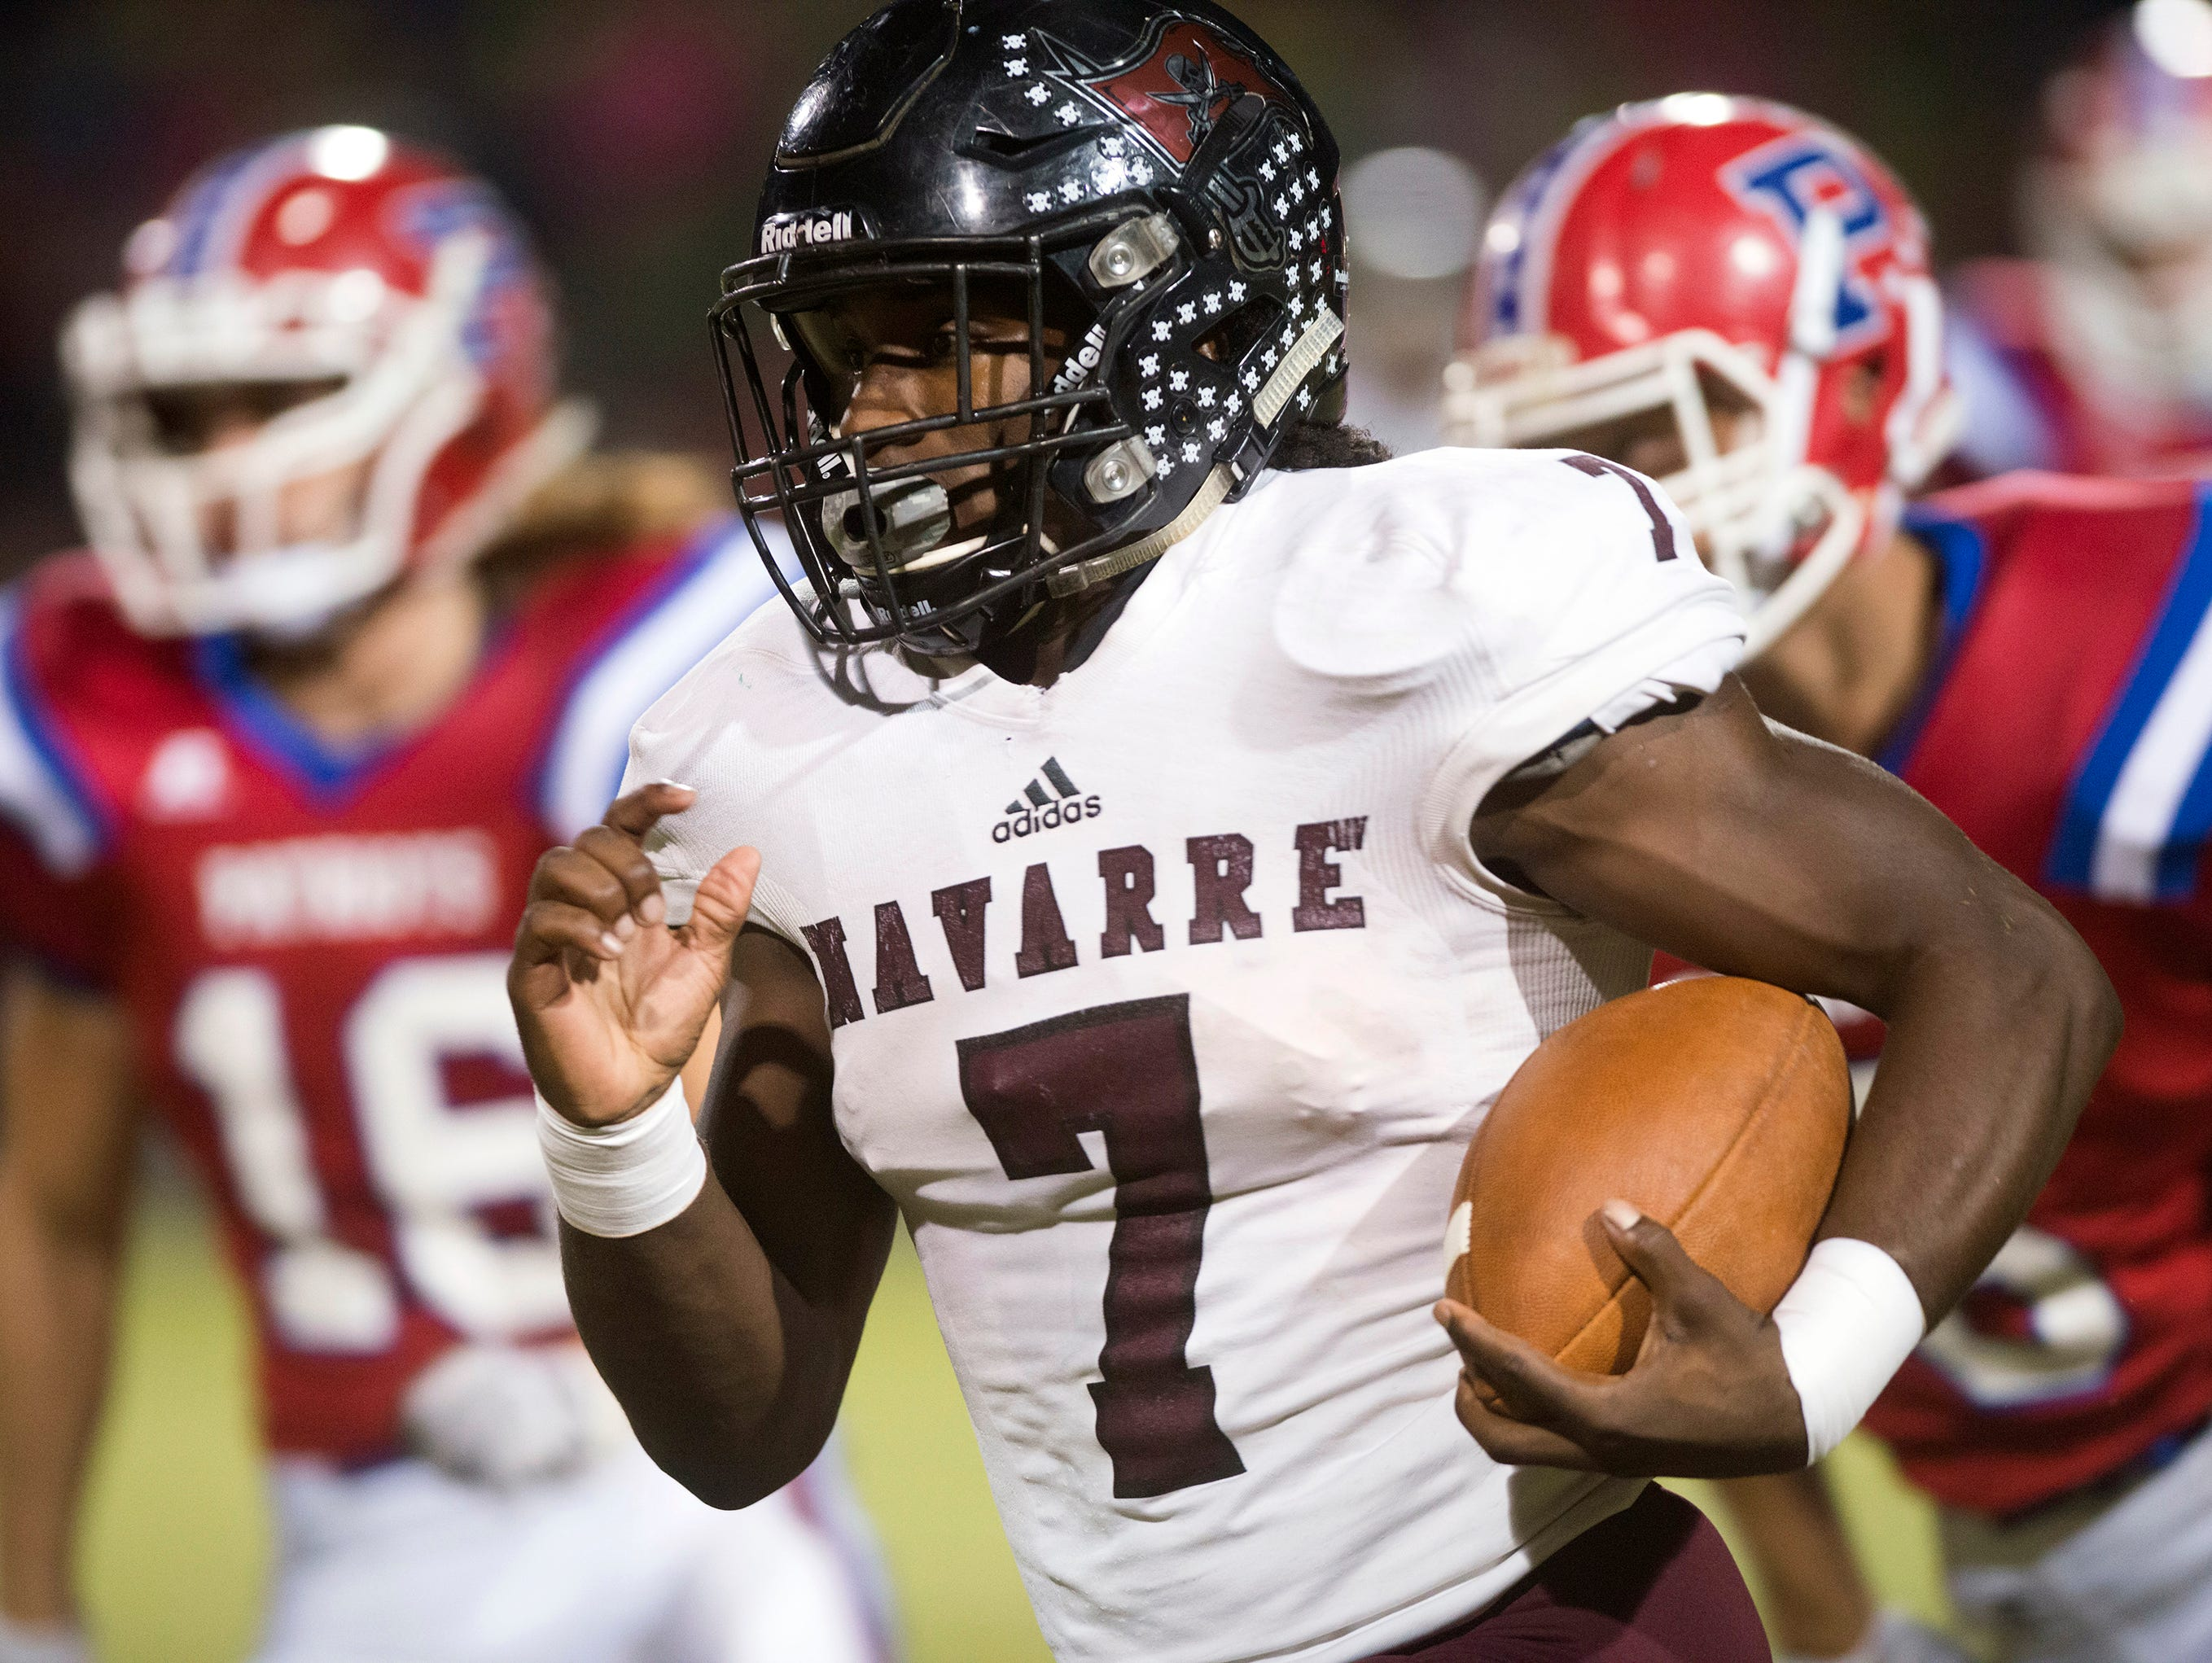 Navarre High School star running back Michael Carter (No. 7) runs for extra yards against the Pace High School defense during Friday night's District 2-6A matchup.